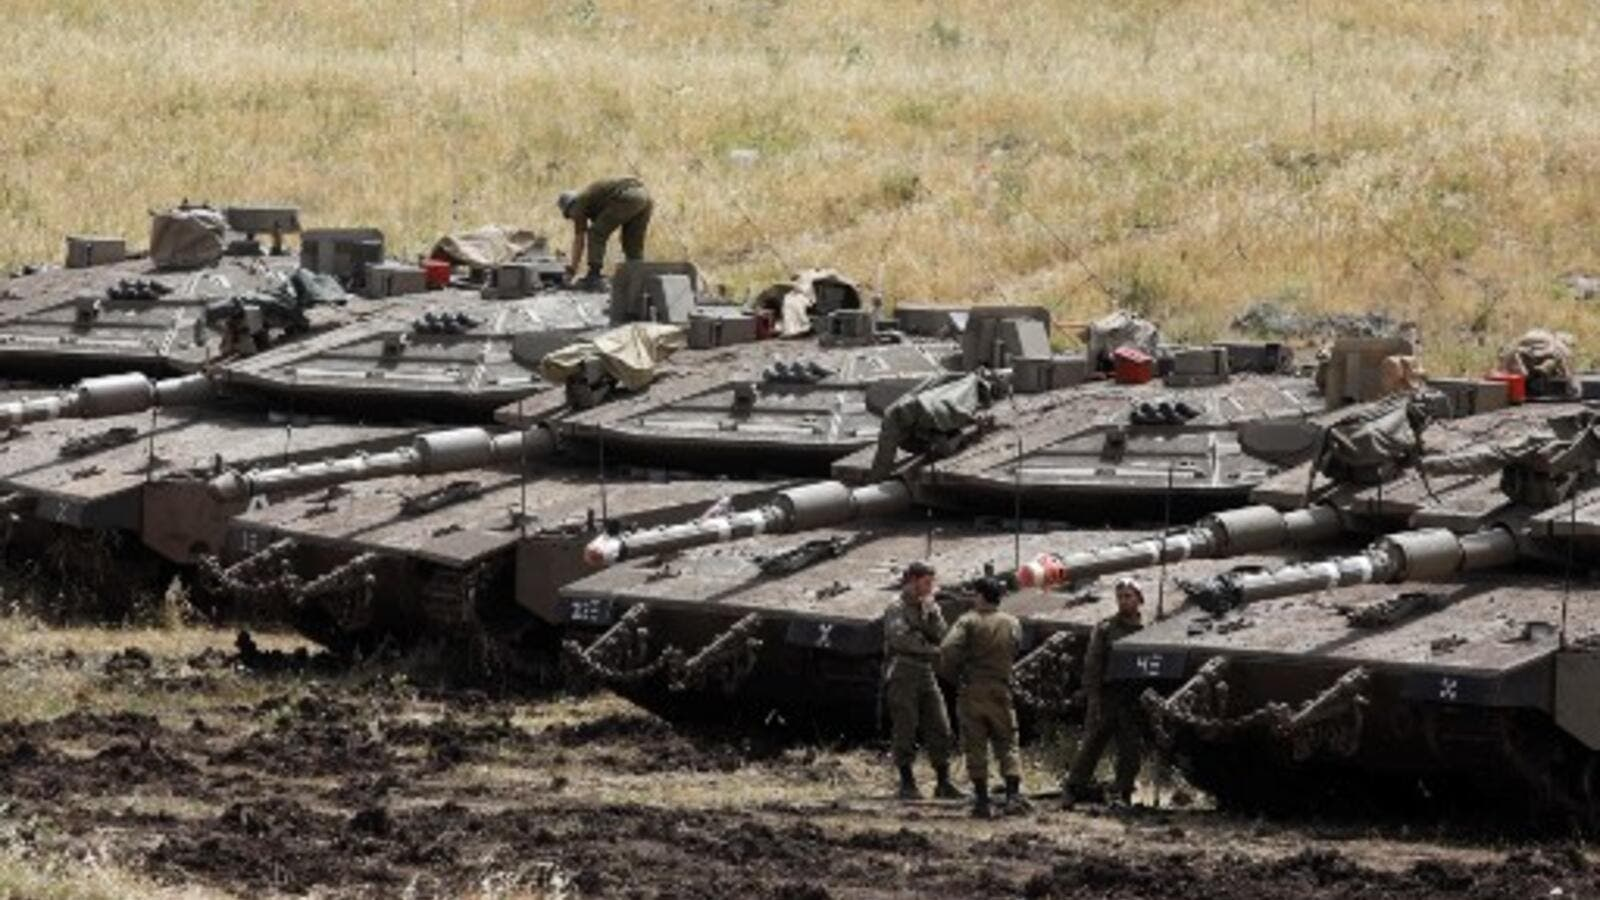 Israeli Merkava tanks are seen in a deployment area near the Syrian border in the Israel-annexed Golan Heights on May 10, 2018 (AFP)